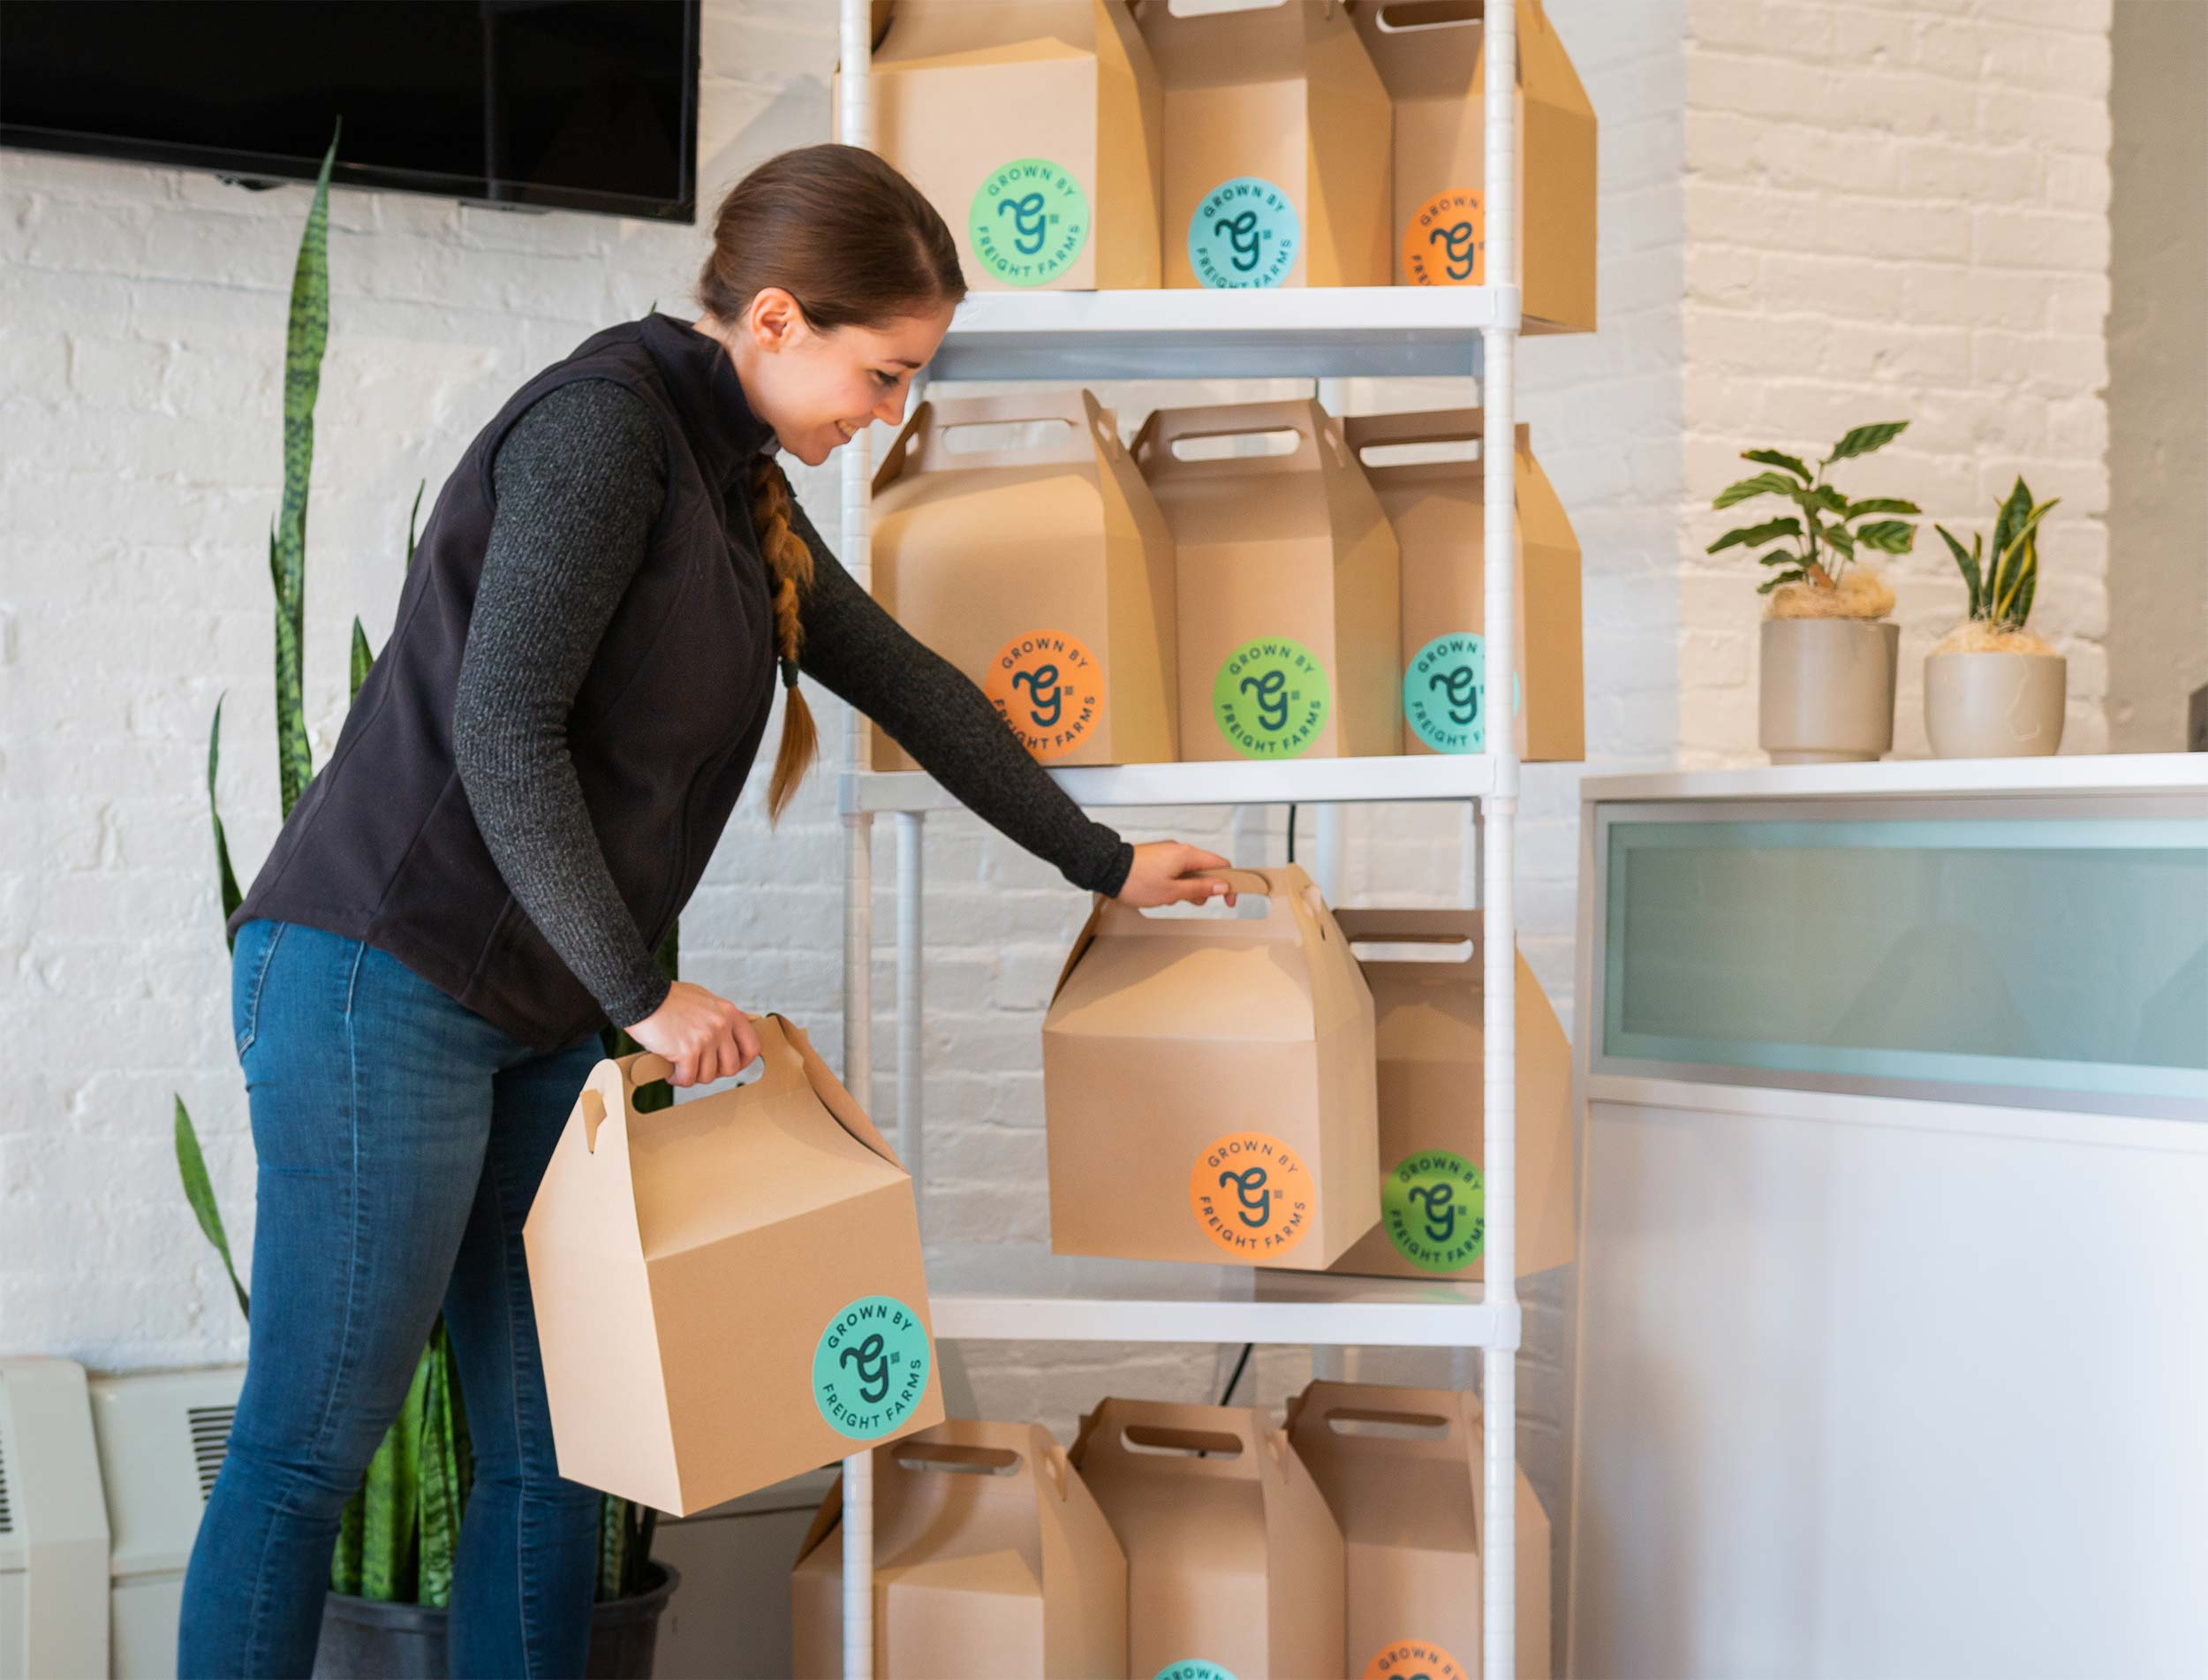 Francesca delivers individually packaged shares to various WeWork locations.